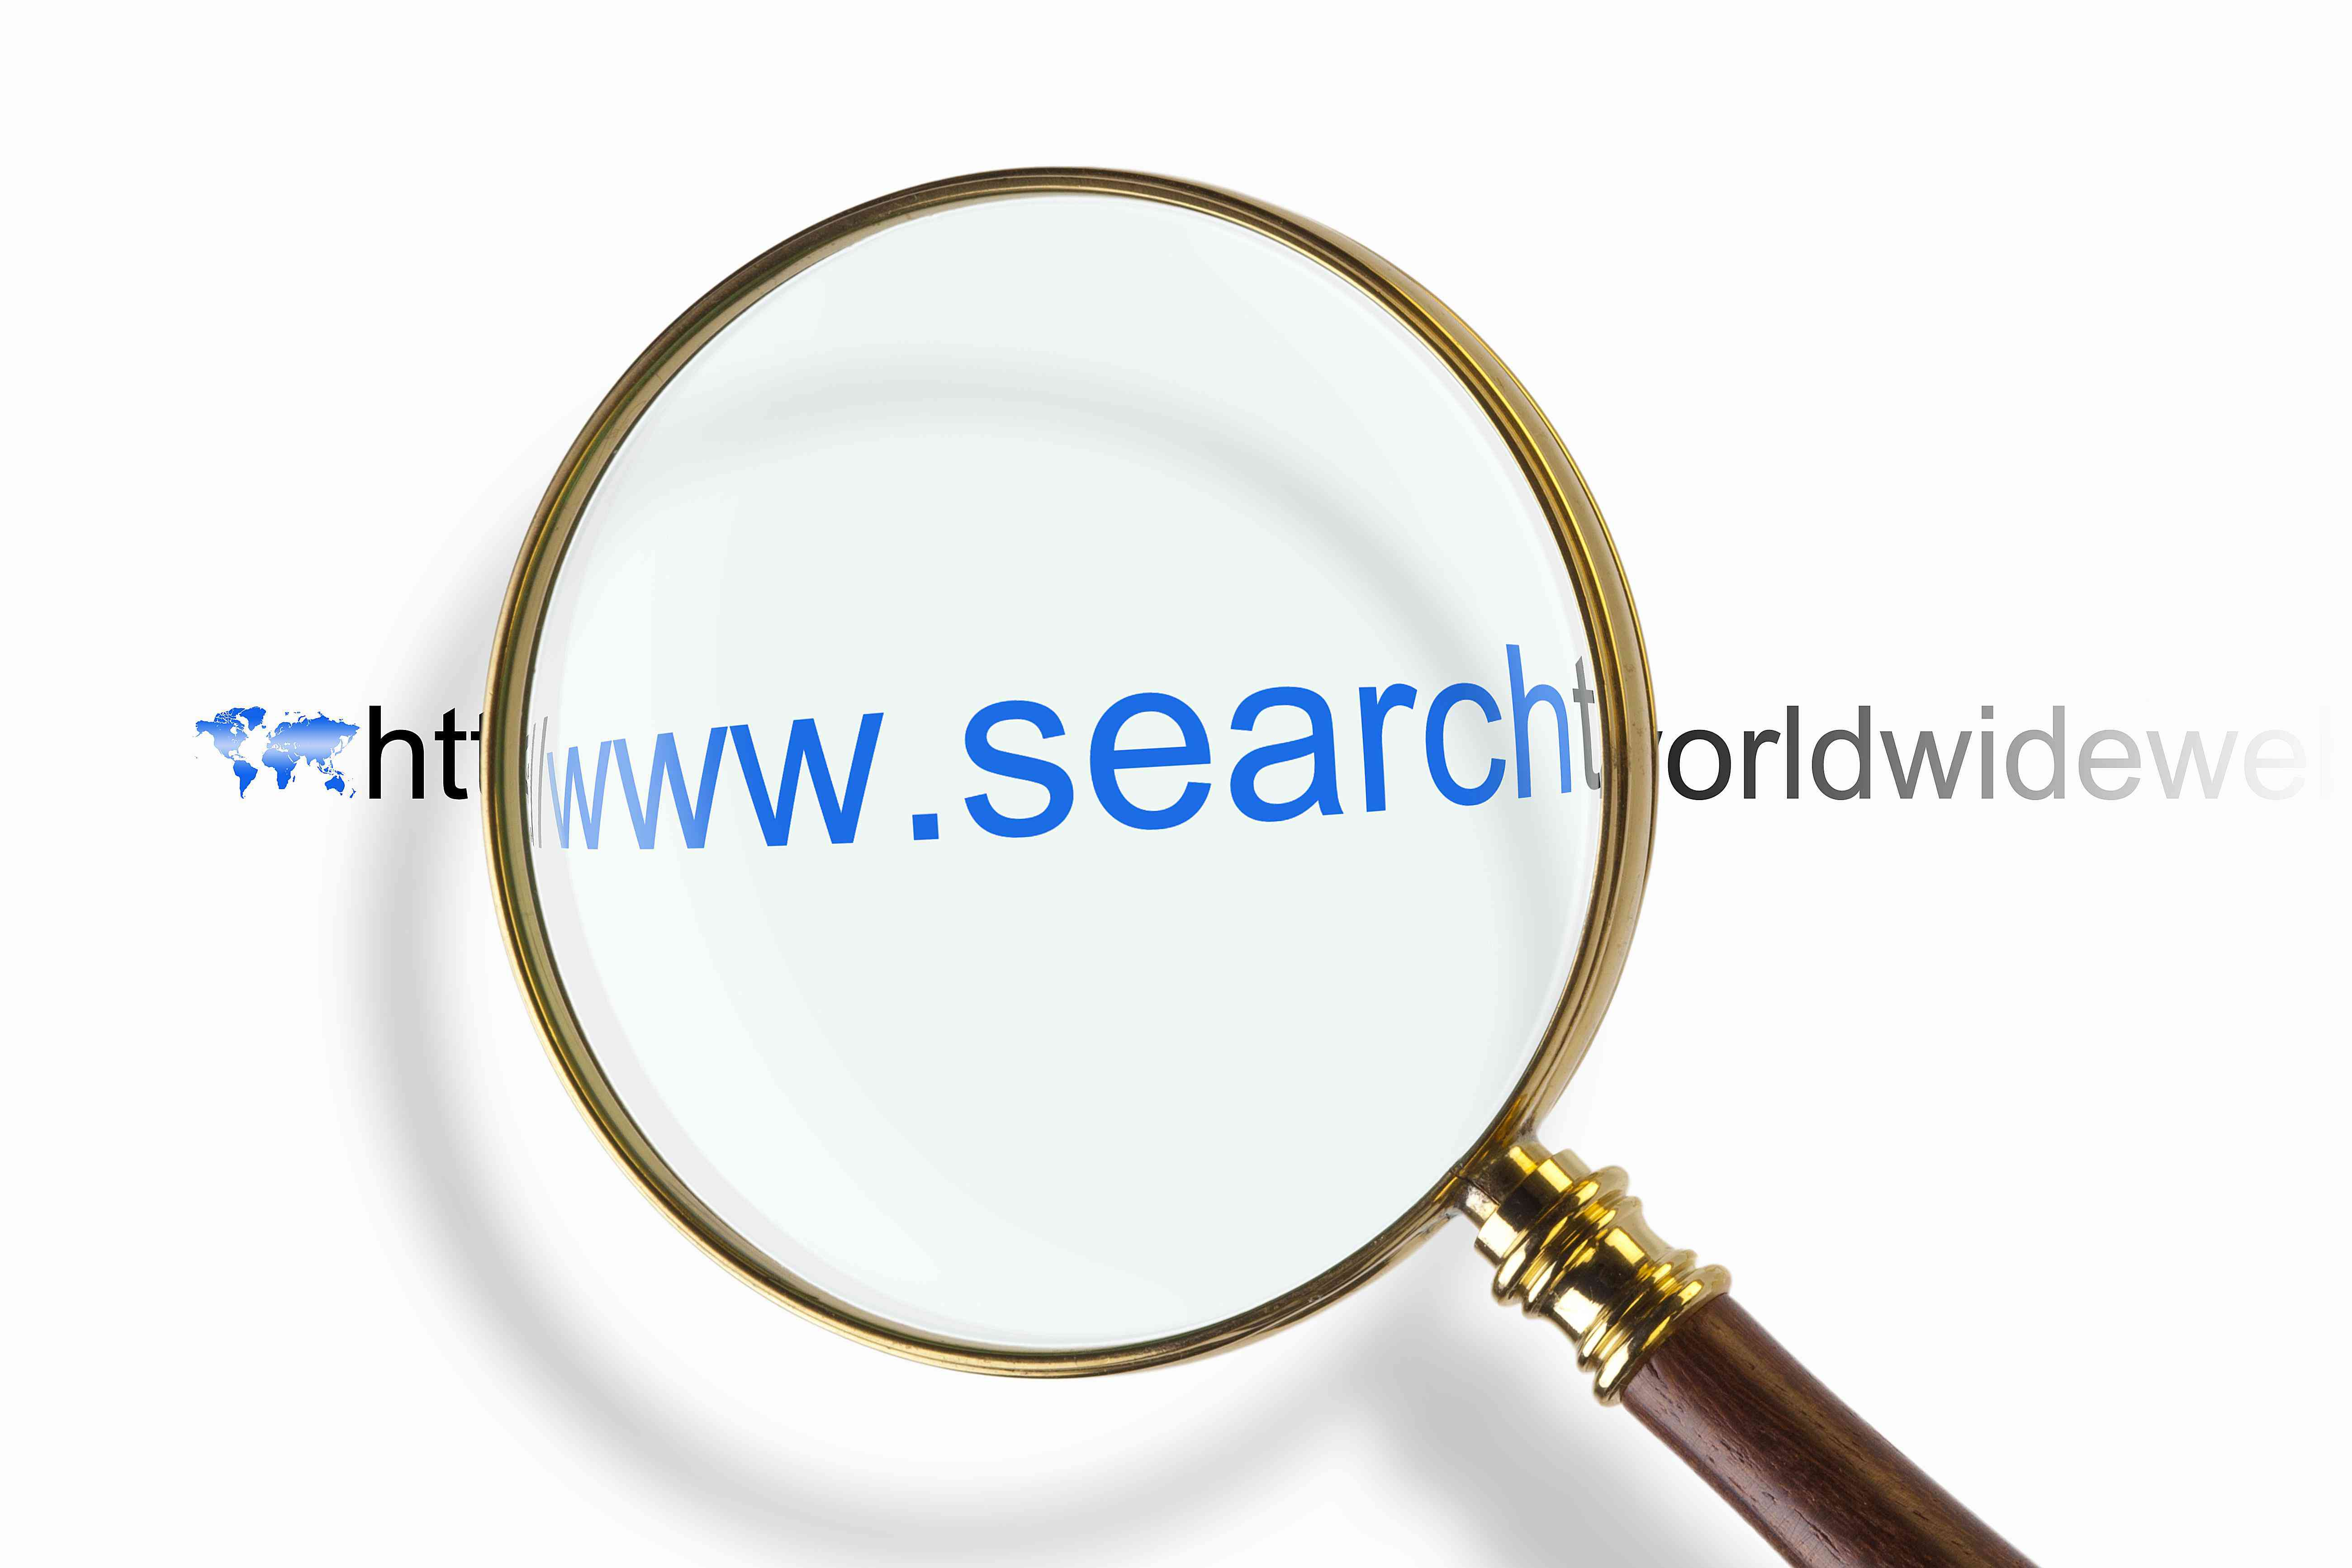 Magnifying glass, searching the internet